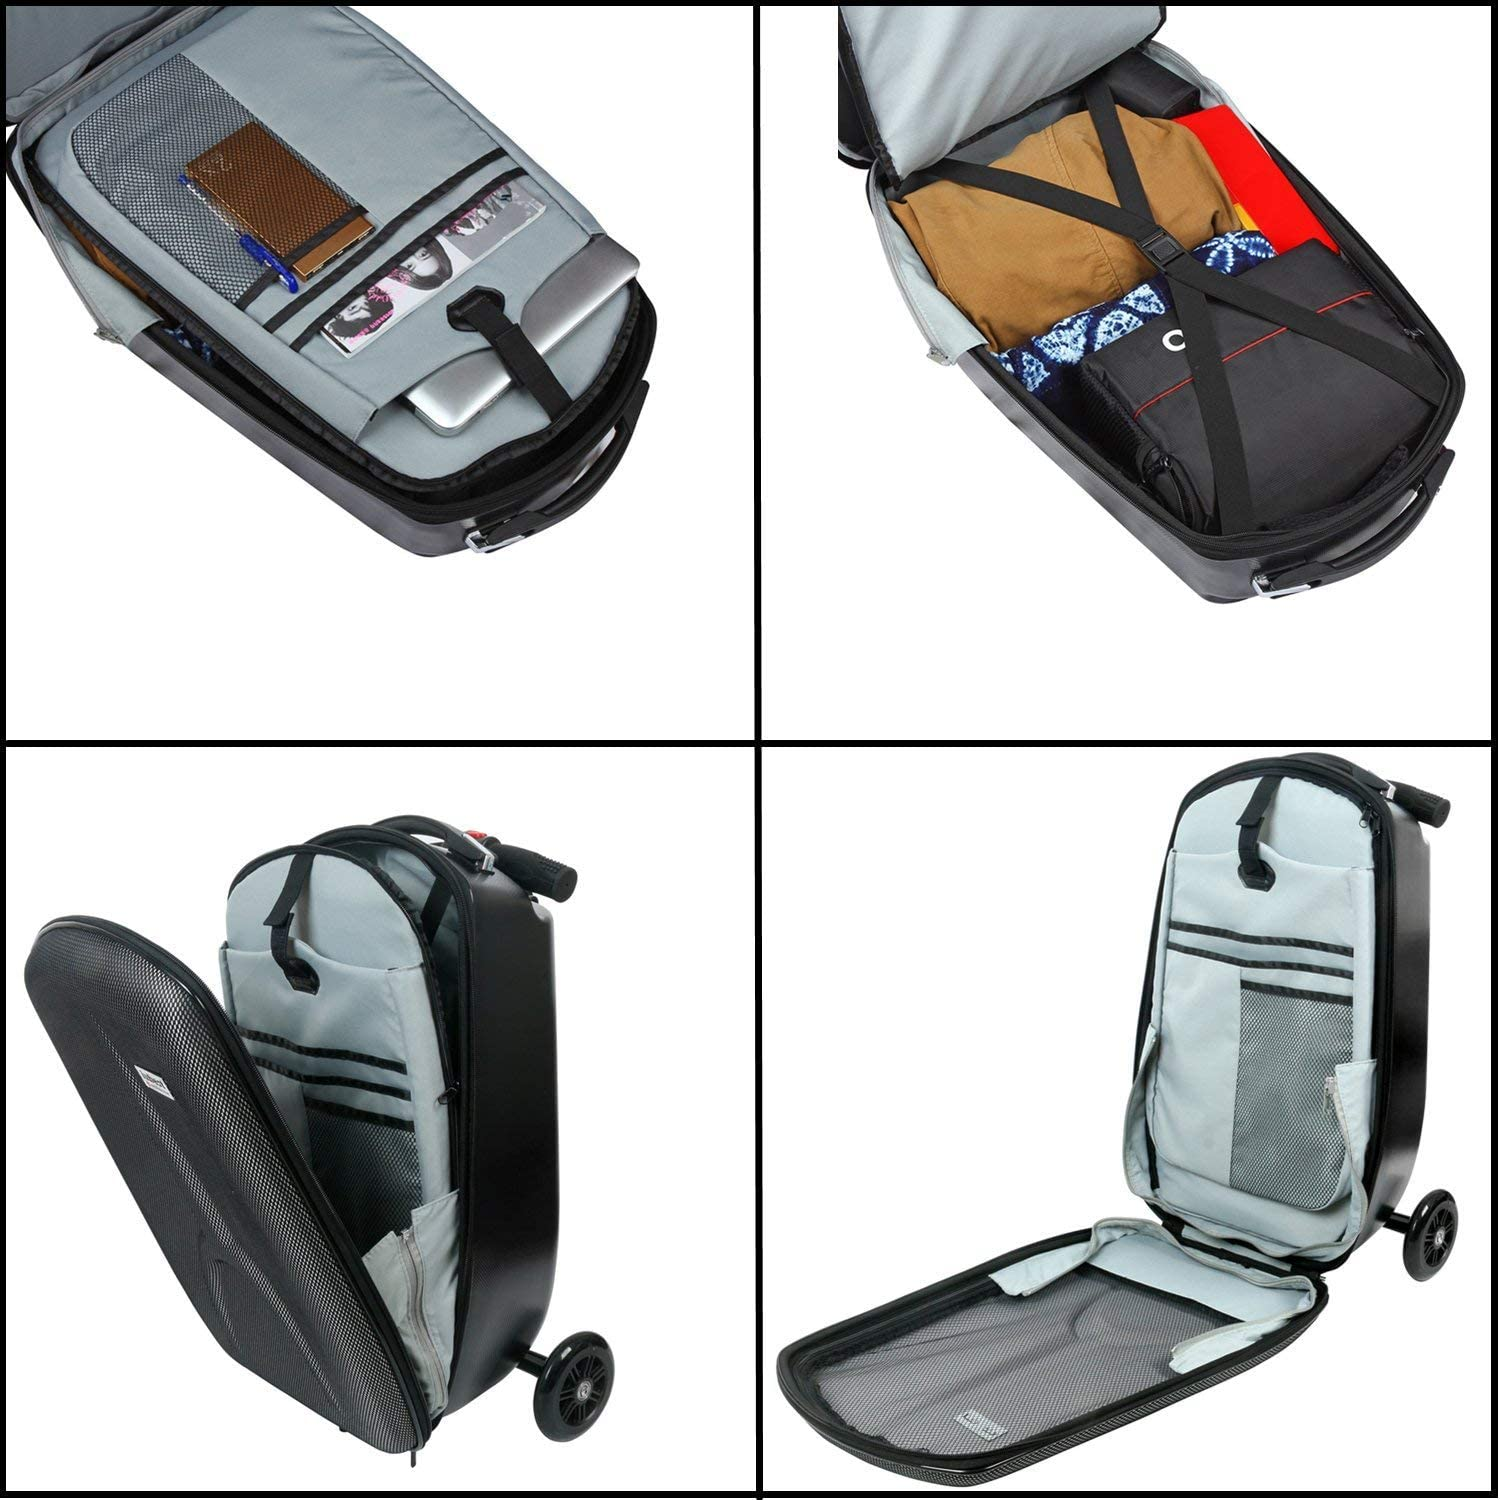 18 inches iubest Scooter Luggage for Adult Carry on Suitcase Foldable Trolley Case Bags for Travel Business and School Men 50 liter